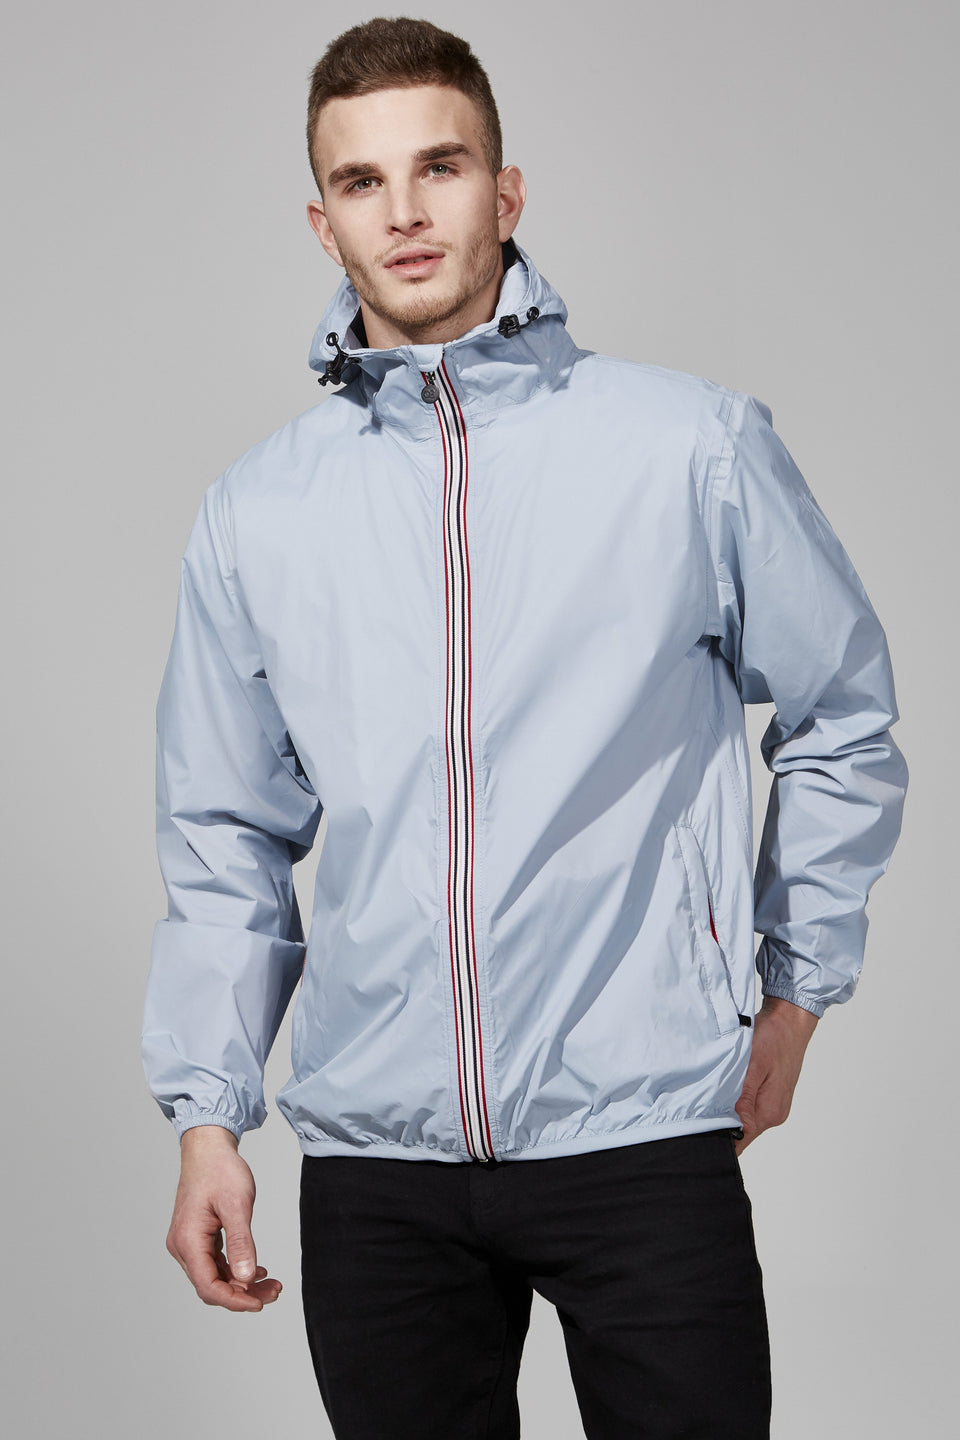 Celestial Blue Full Zip Packable Jacket - Men -  O8lifestyle